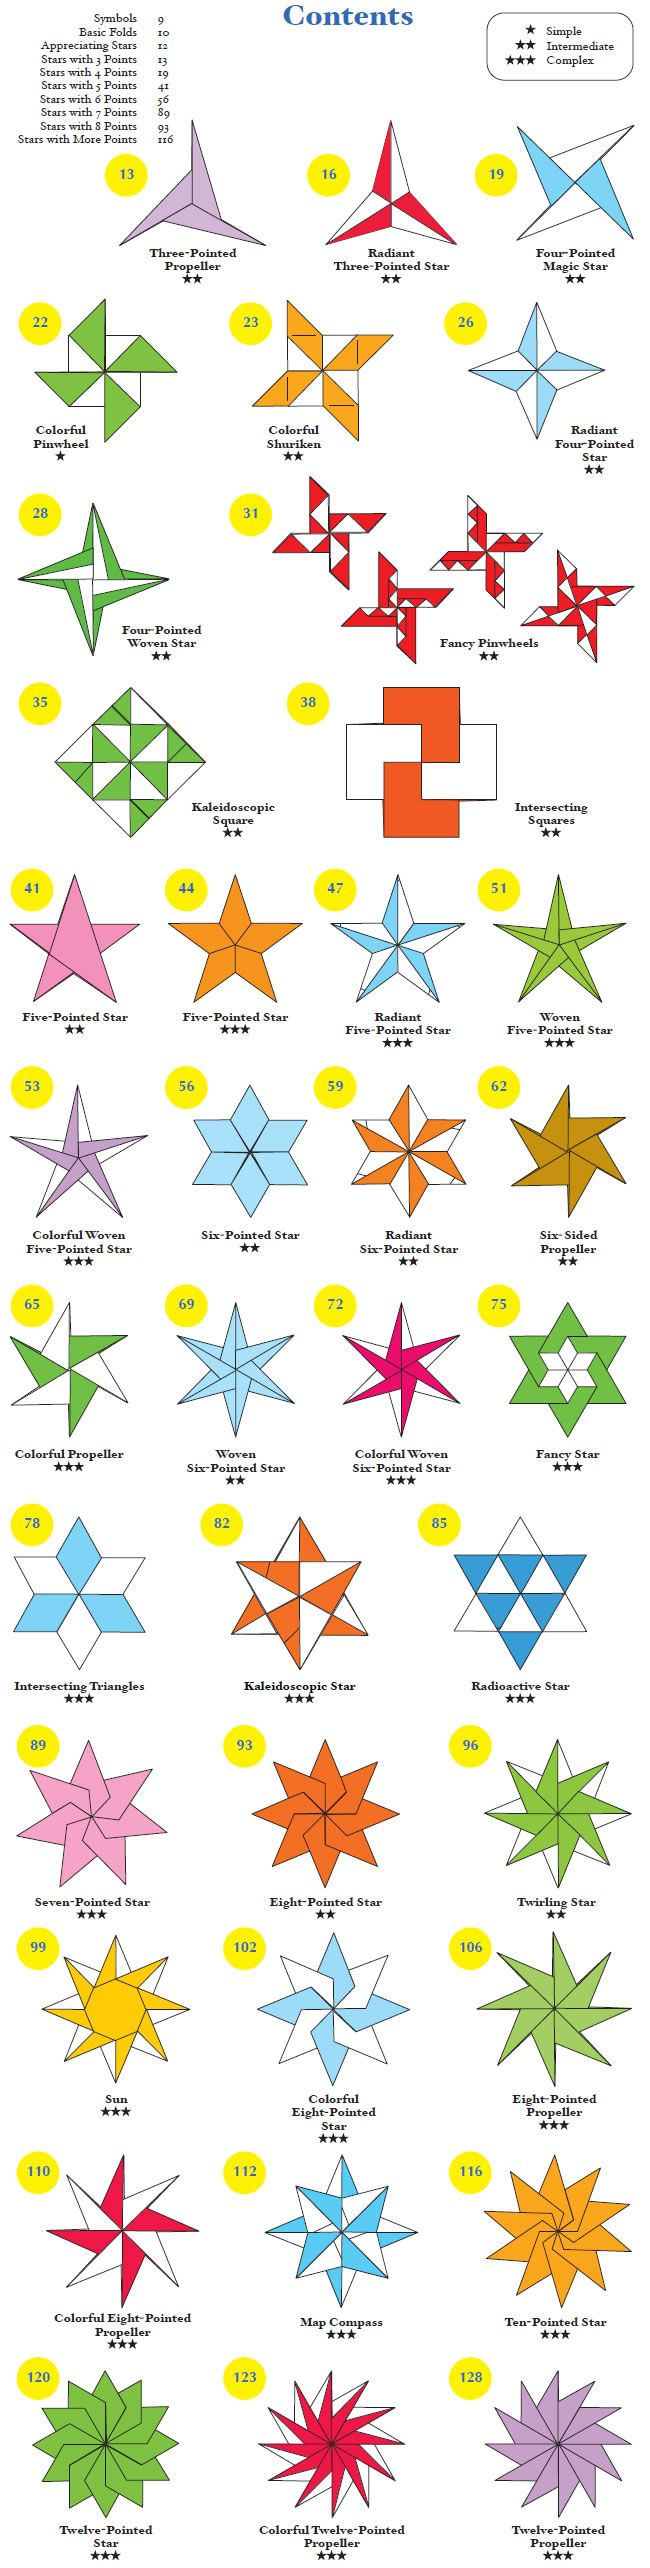 Origami Stars - Page 2 of 8